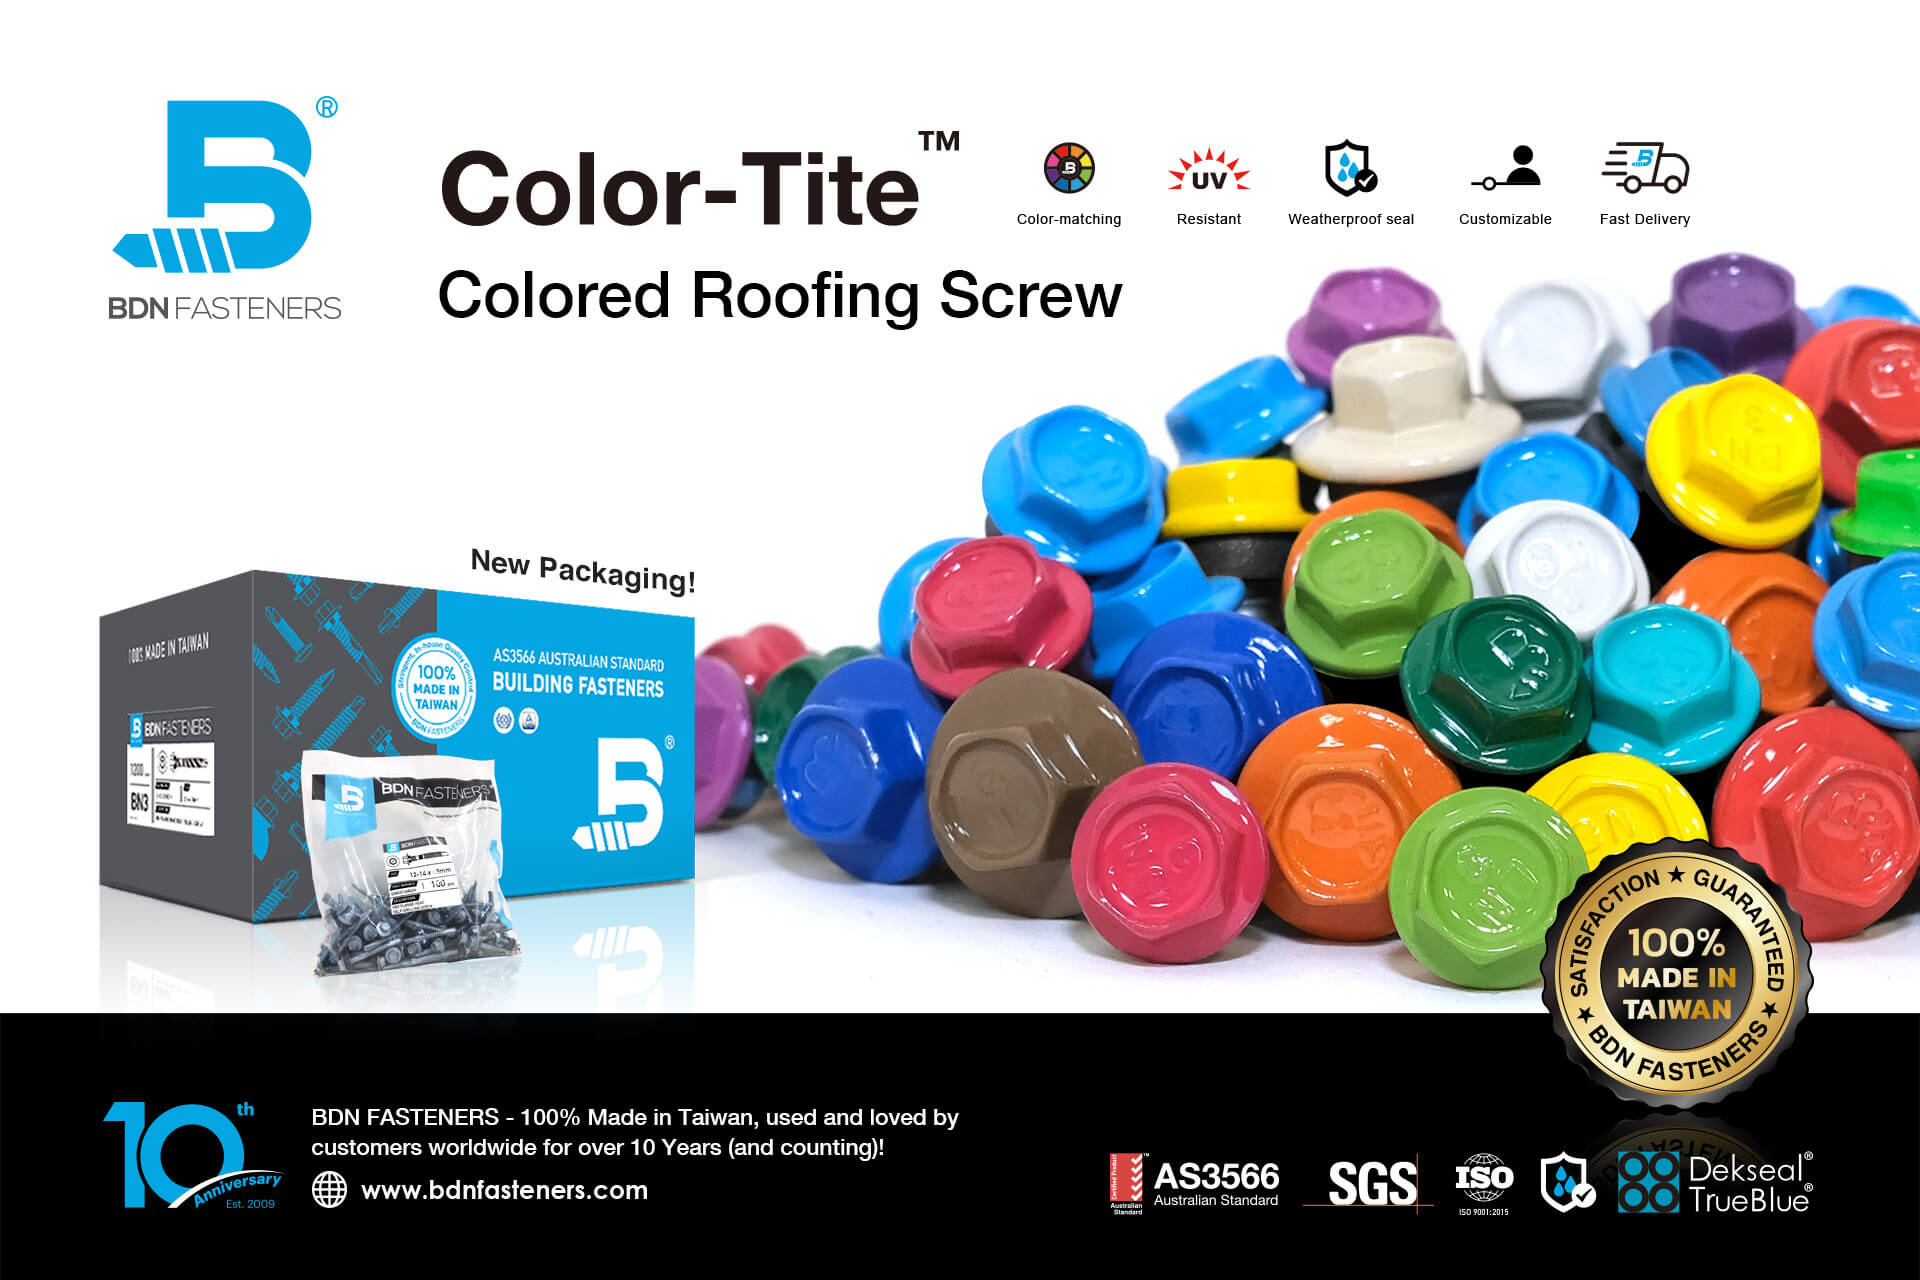 Colored Roofing Screw-BDN FASTENERS - Made in Taiwan